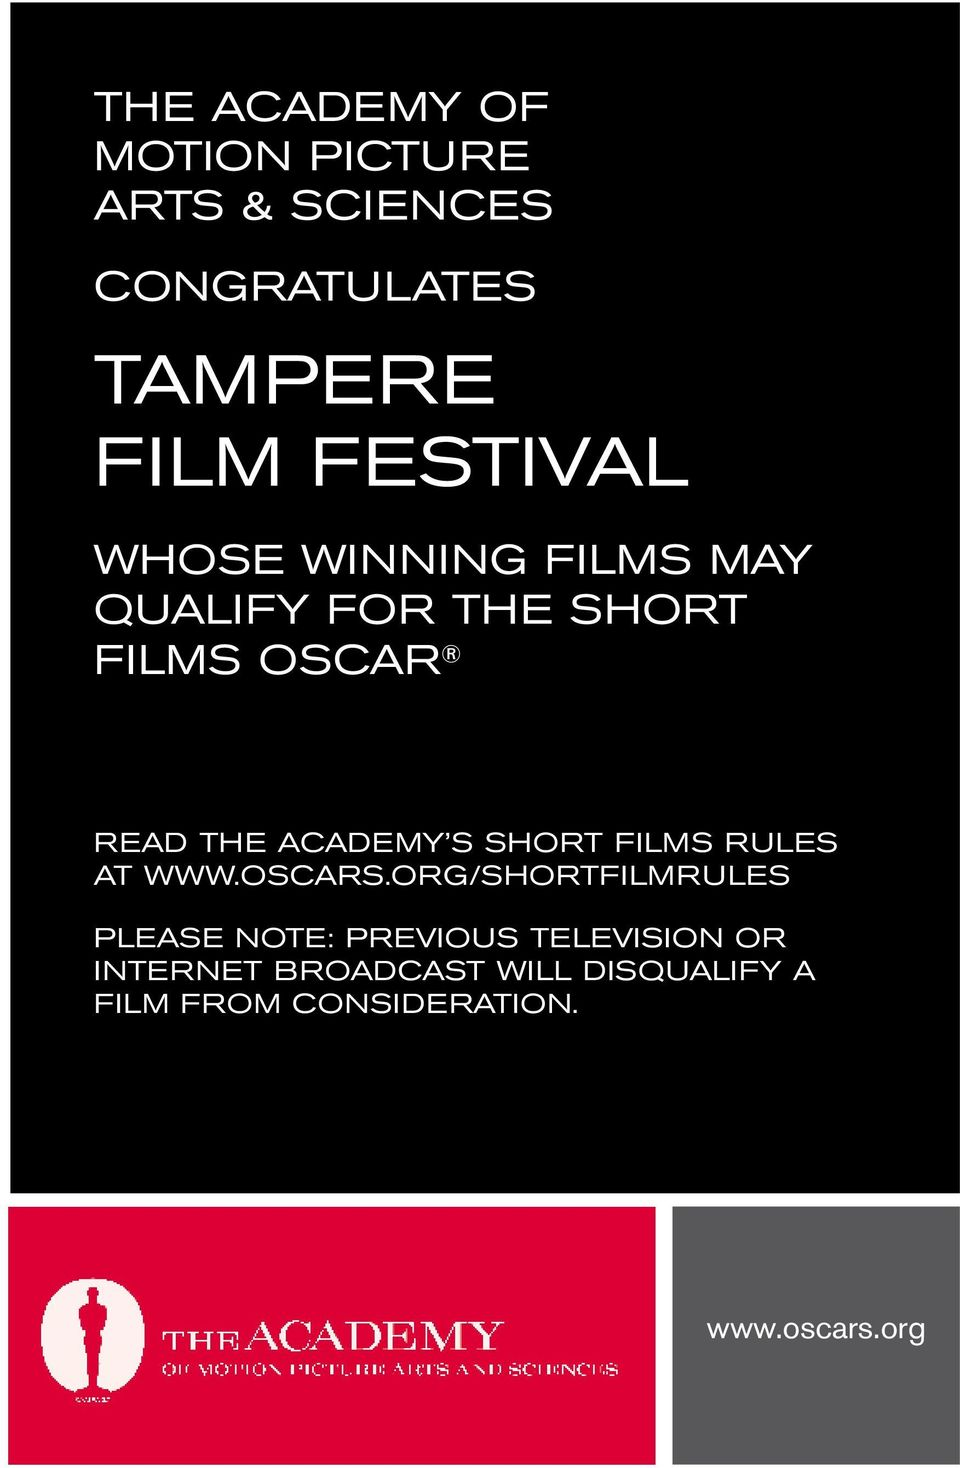 ACADEMY S SHORT FILMS RULES AT WWW.OSCARS.